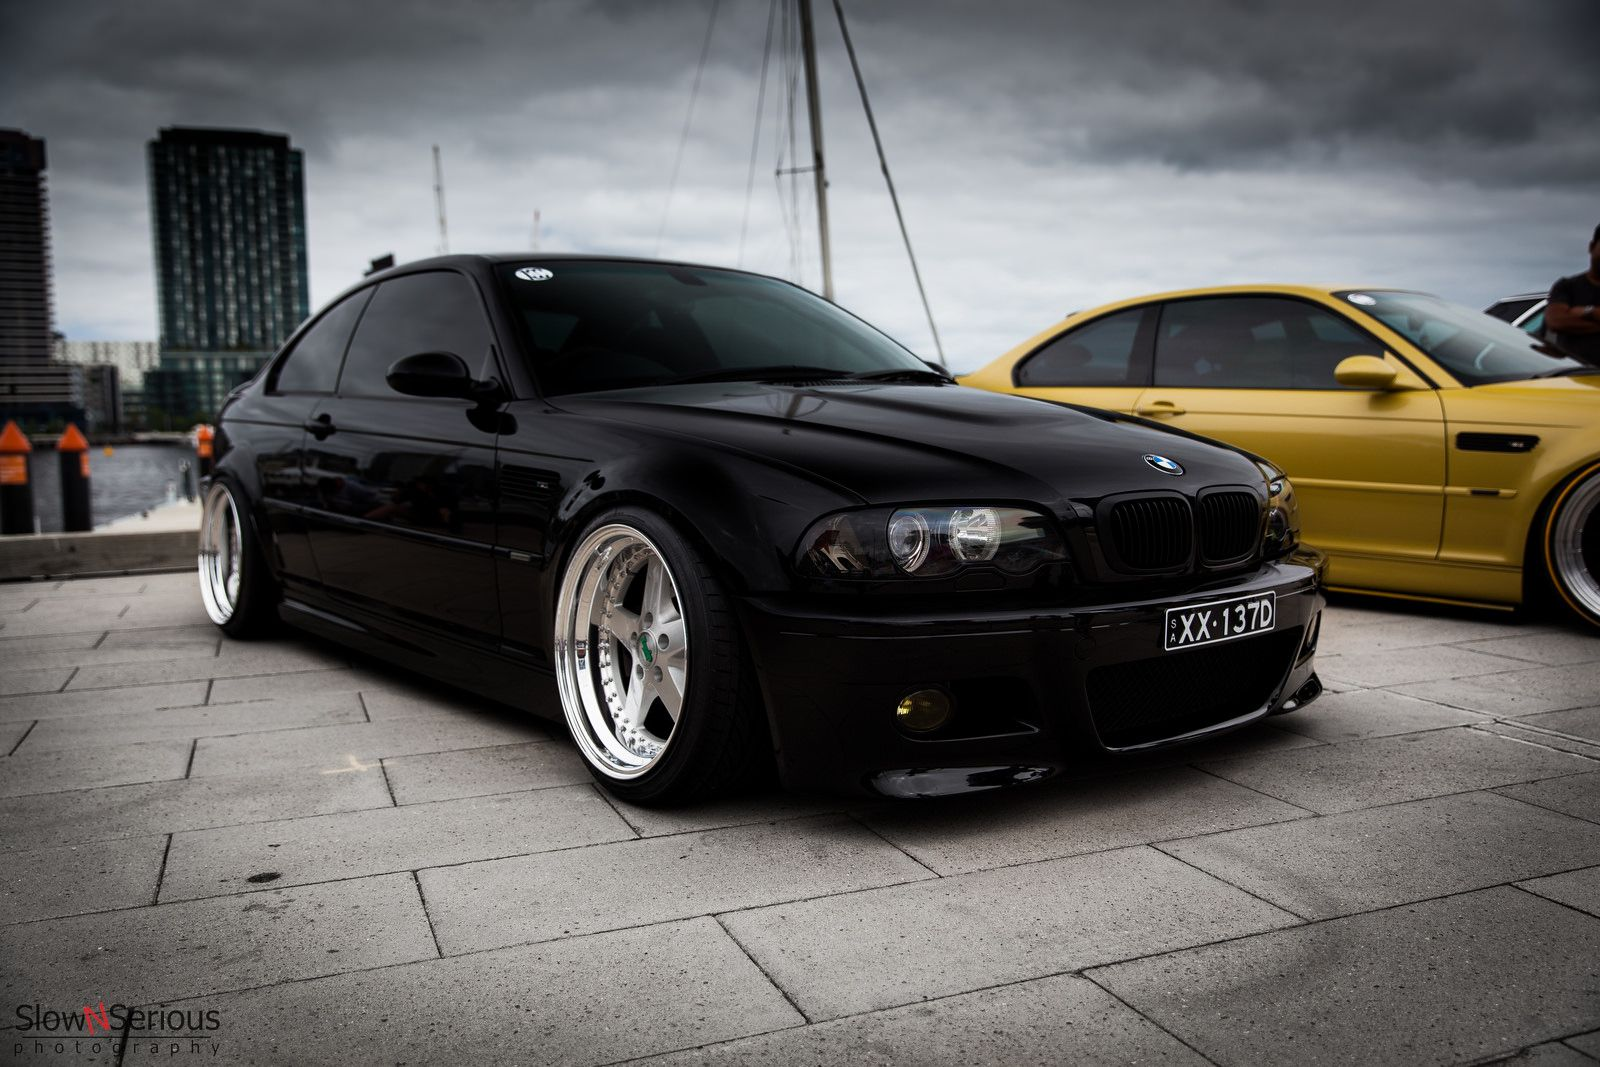 Bmw E46 M3 Black Deep Dish With Images Bmw Bmw Classic Cars